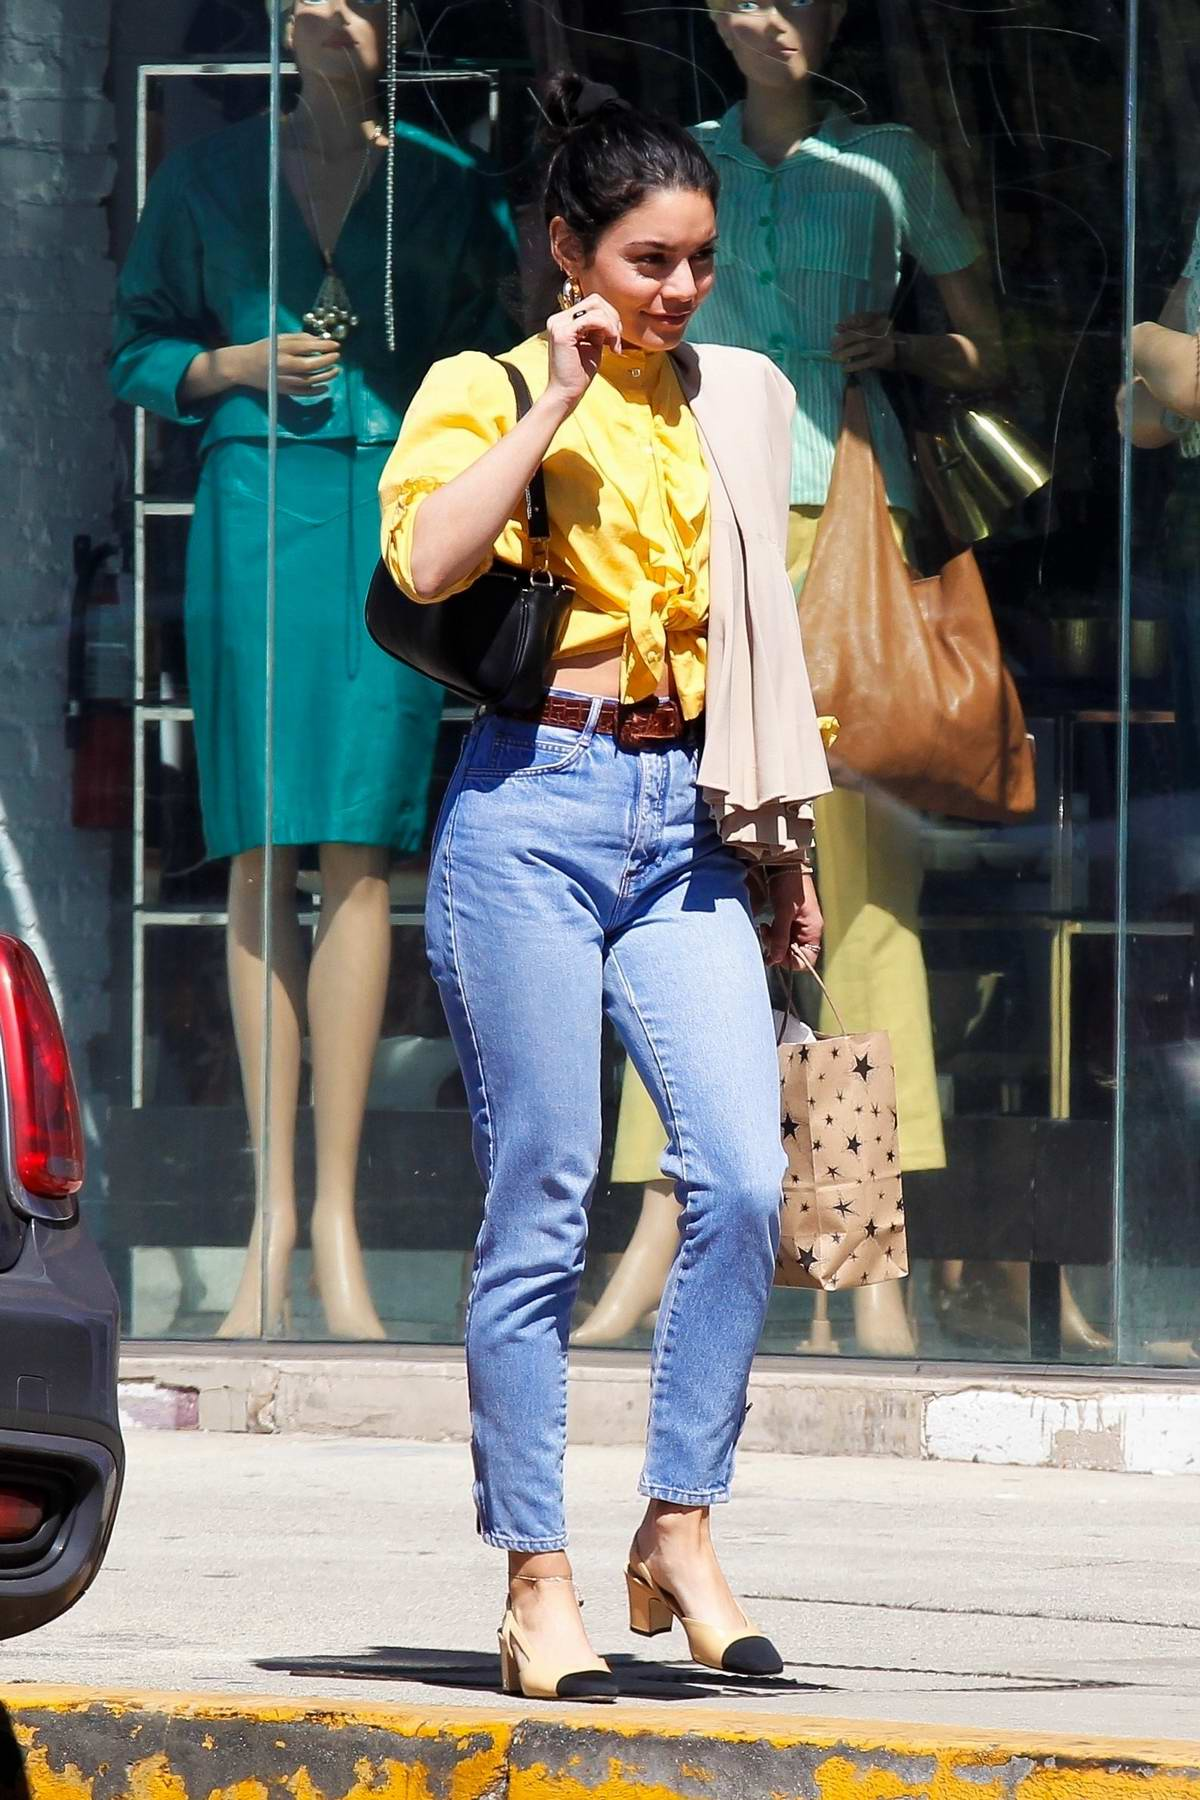 Vanessa Hudgens dons cute yellow blouse and jeans while out in Hollywood, California